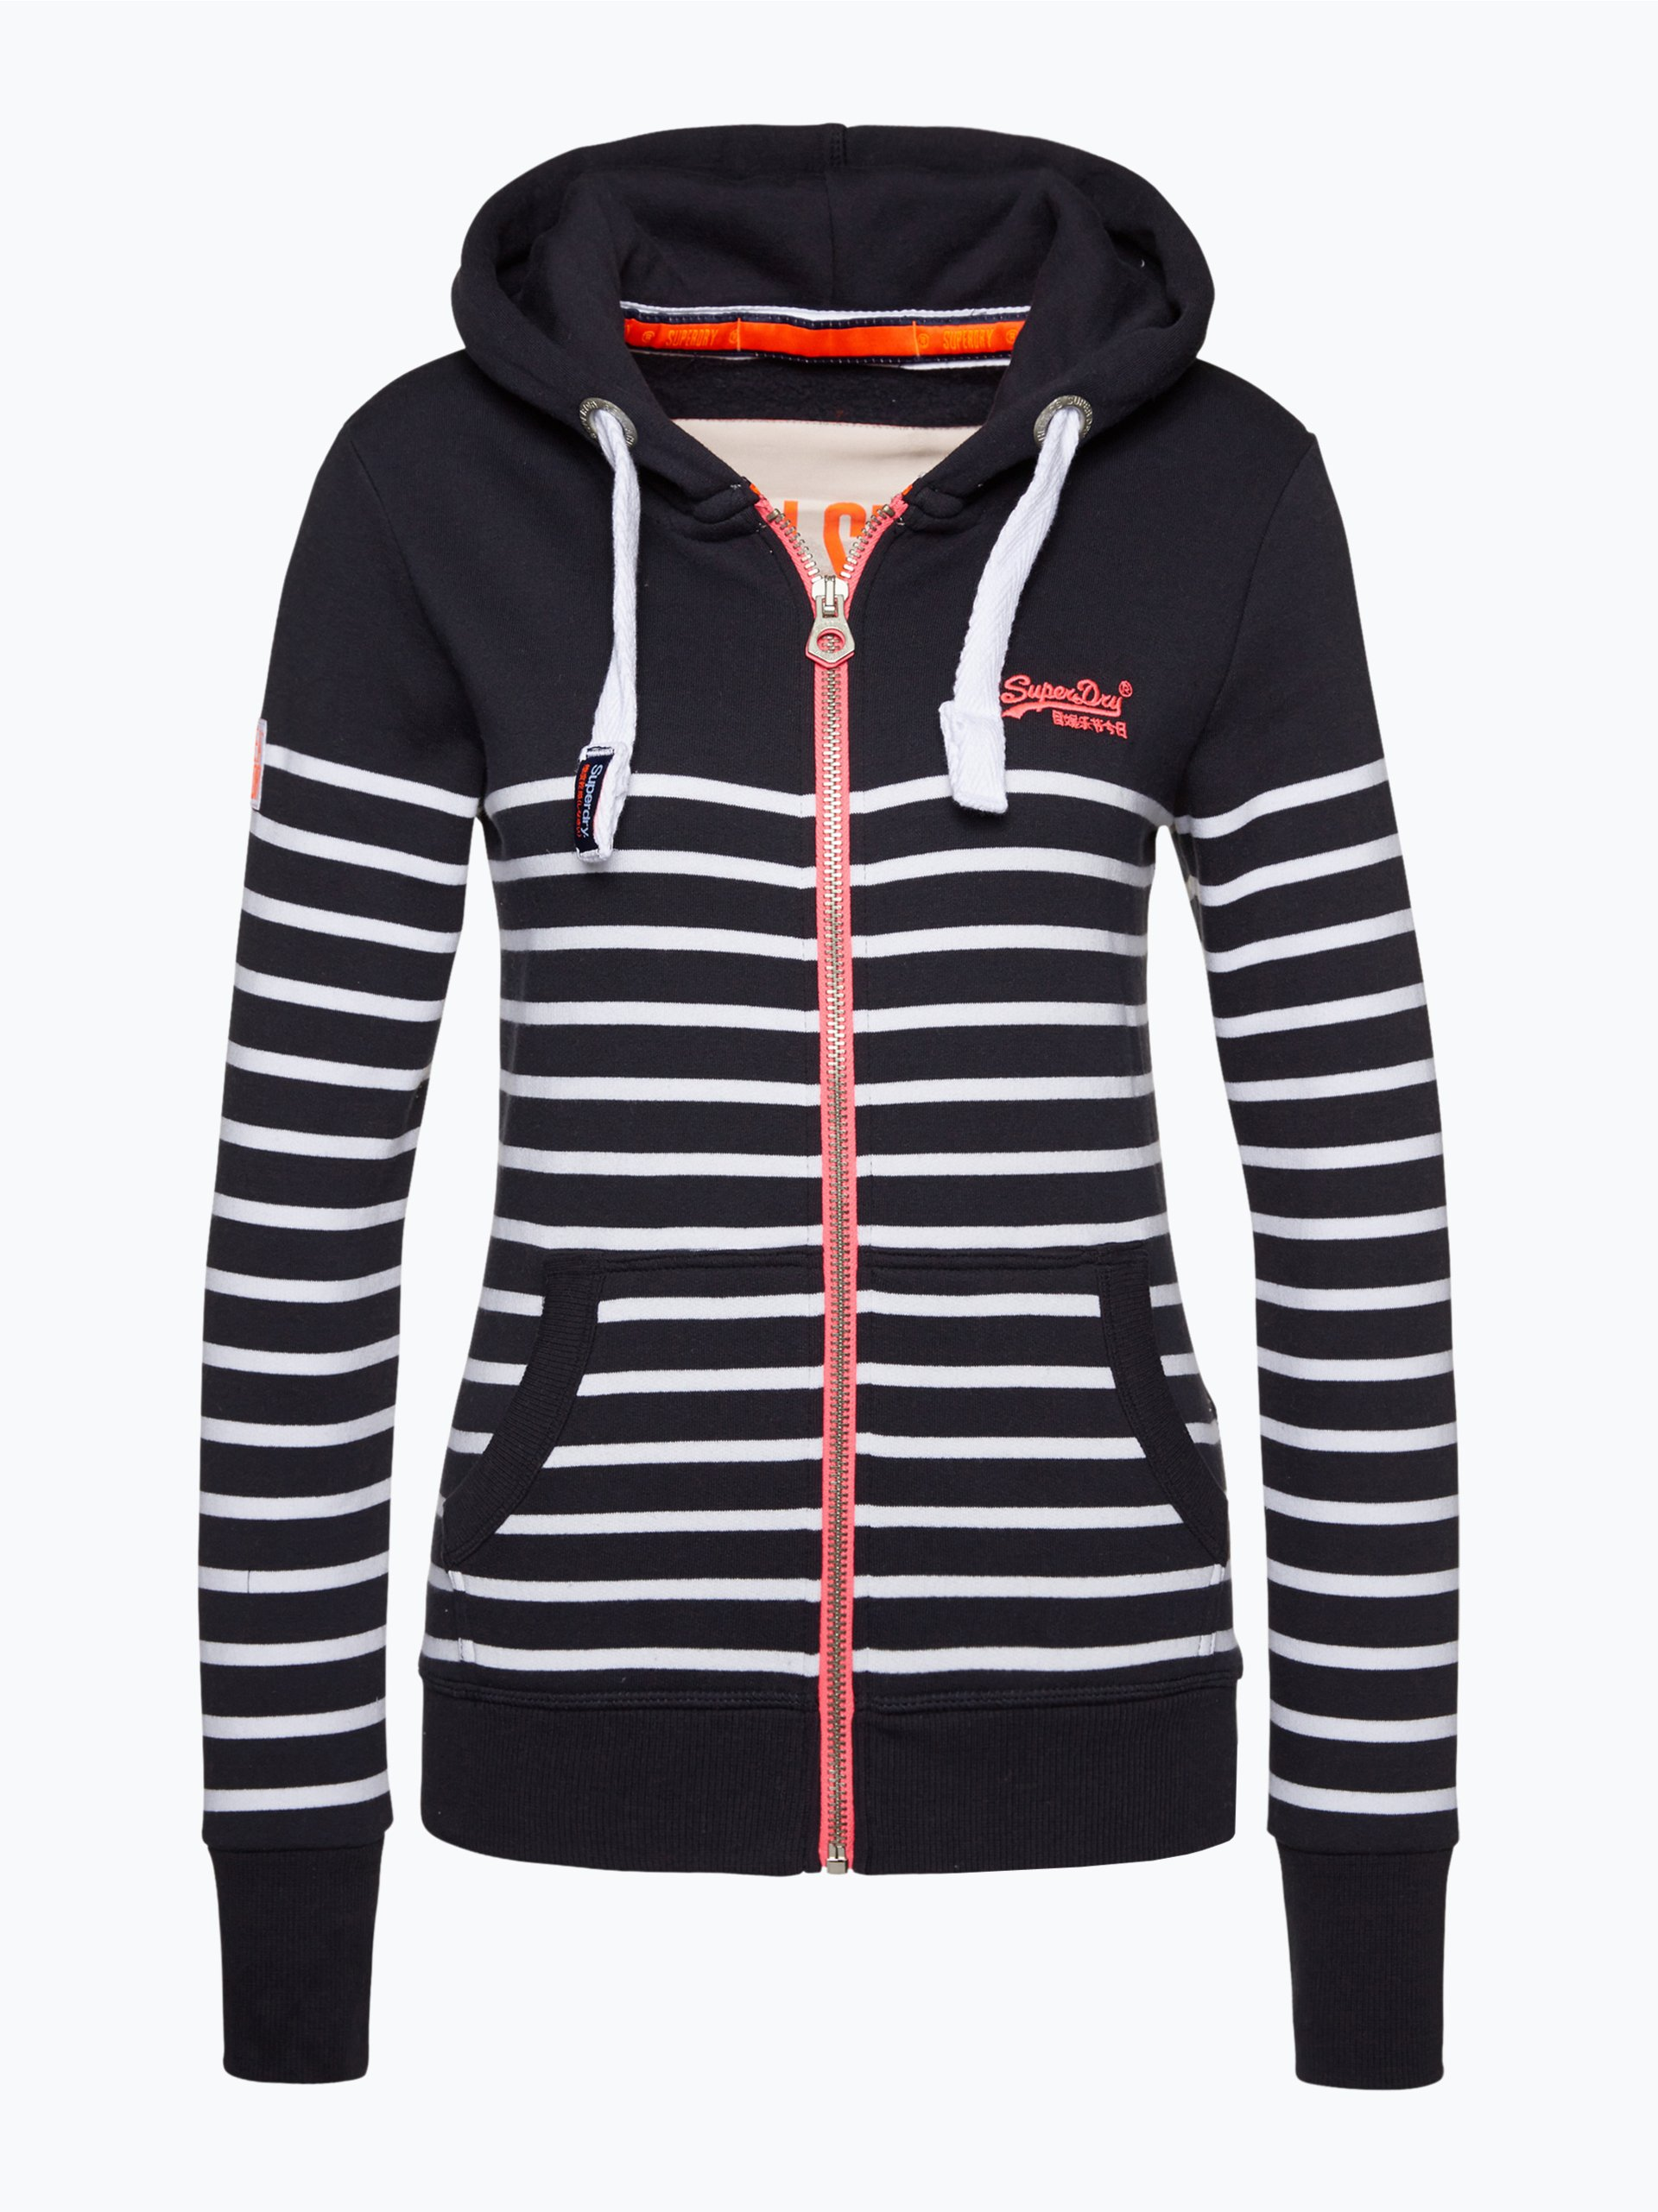 superdry damen sweatjacke marine gestreift online kaufen. Black Bedroom Furniture Sets. Home Design Ideas